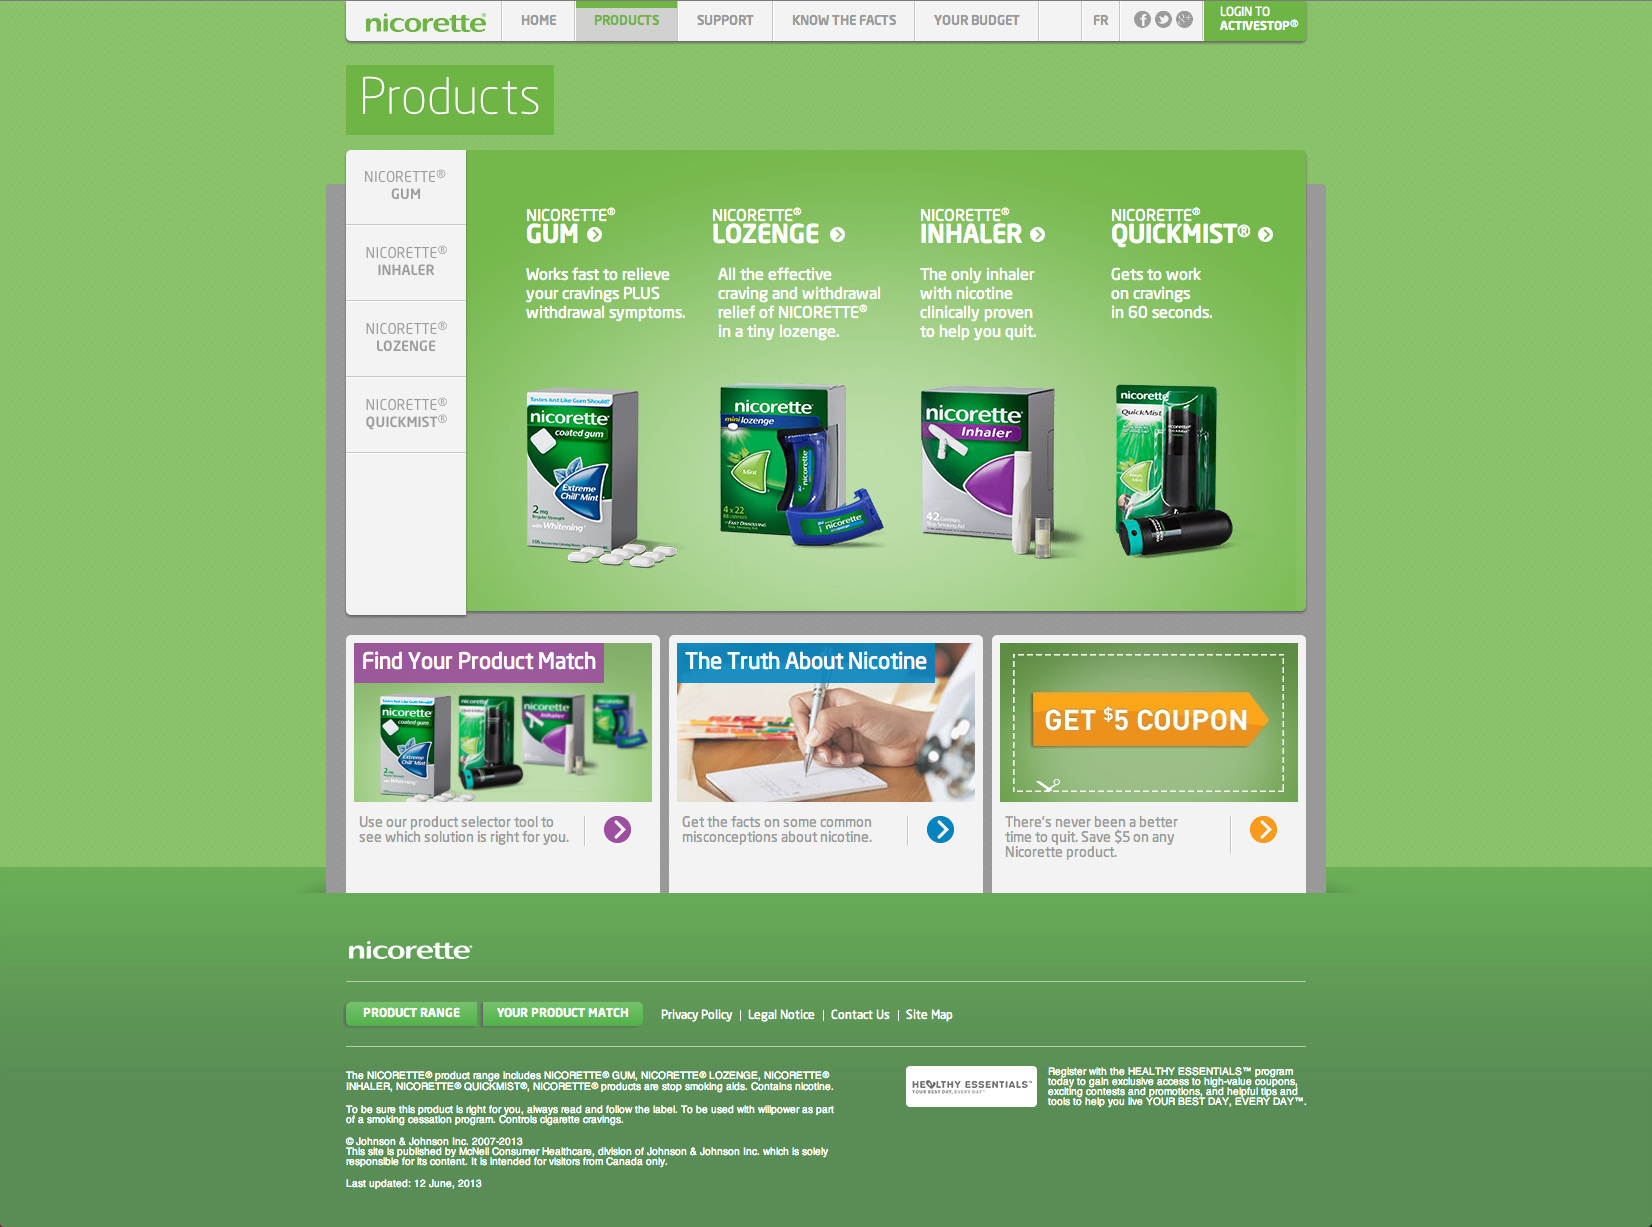 Nicorette_Products1_o